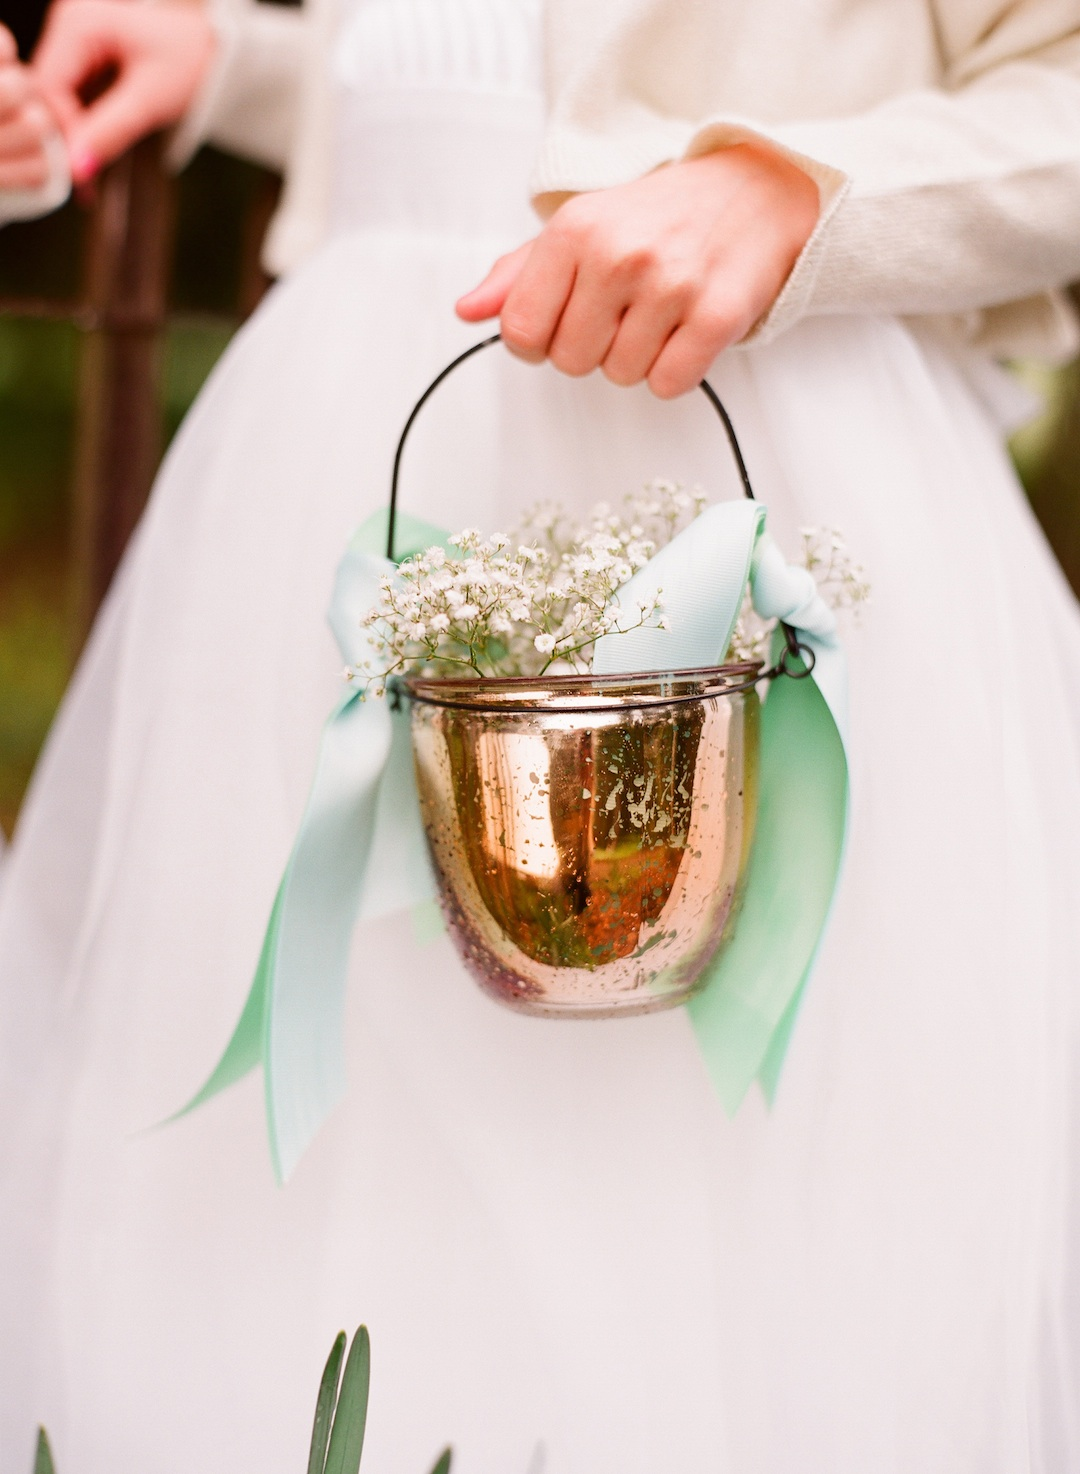 How To Make A Flower Girl Basket : Copper flower girl baskets with baby s breath onewed